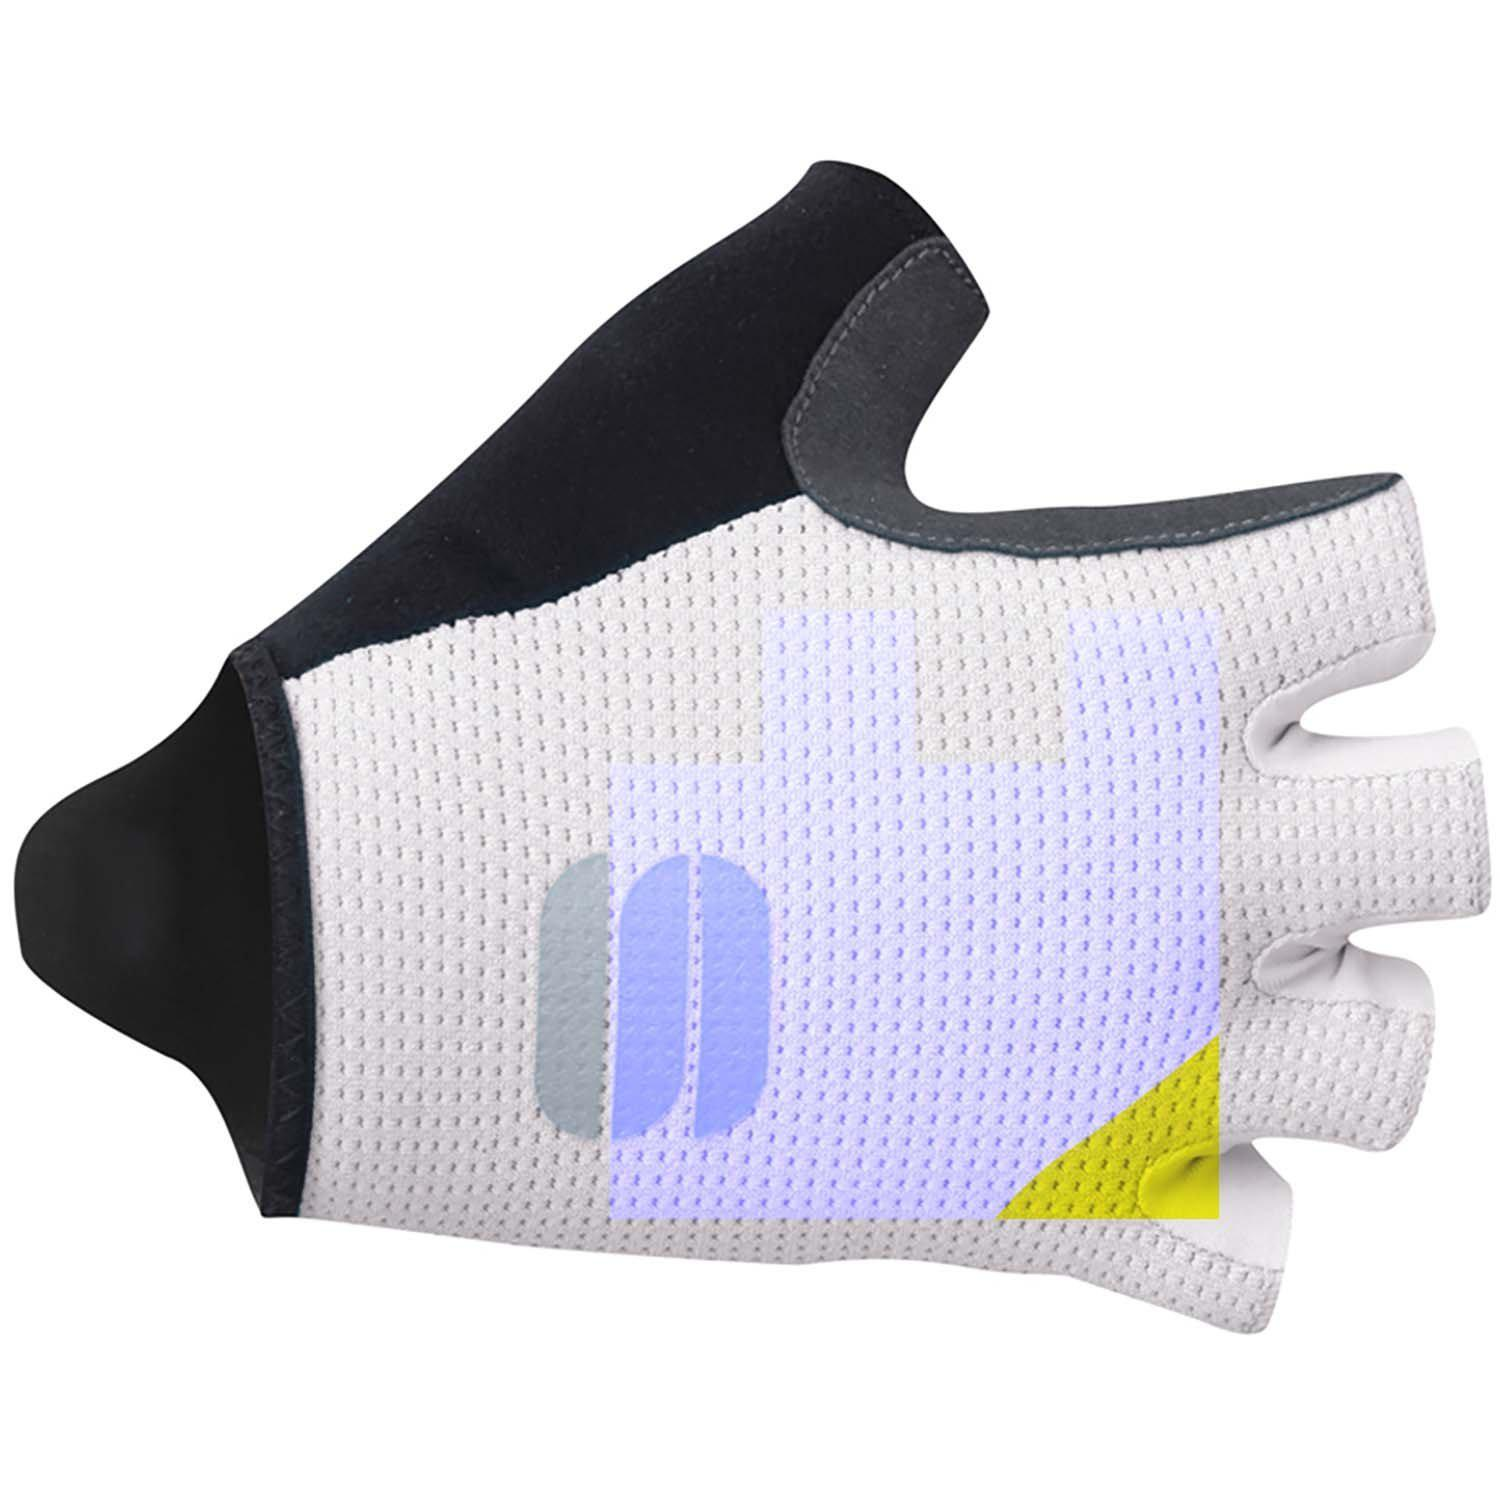 Sportful-Sportful TC Women's Gloves-White-XS-SF200661011-saddleback-elite-performance-cycling